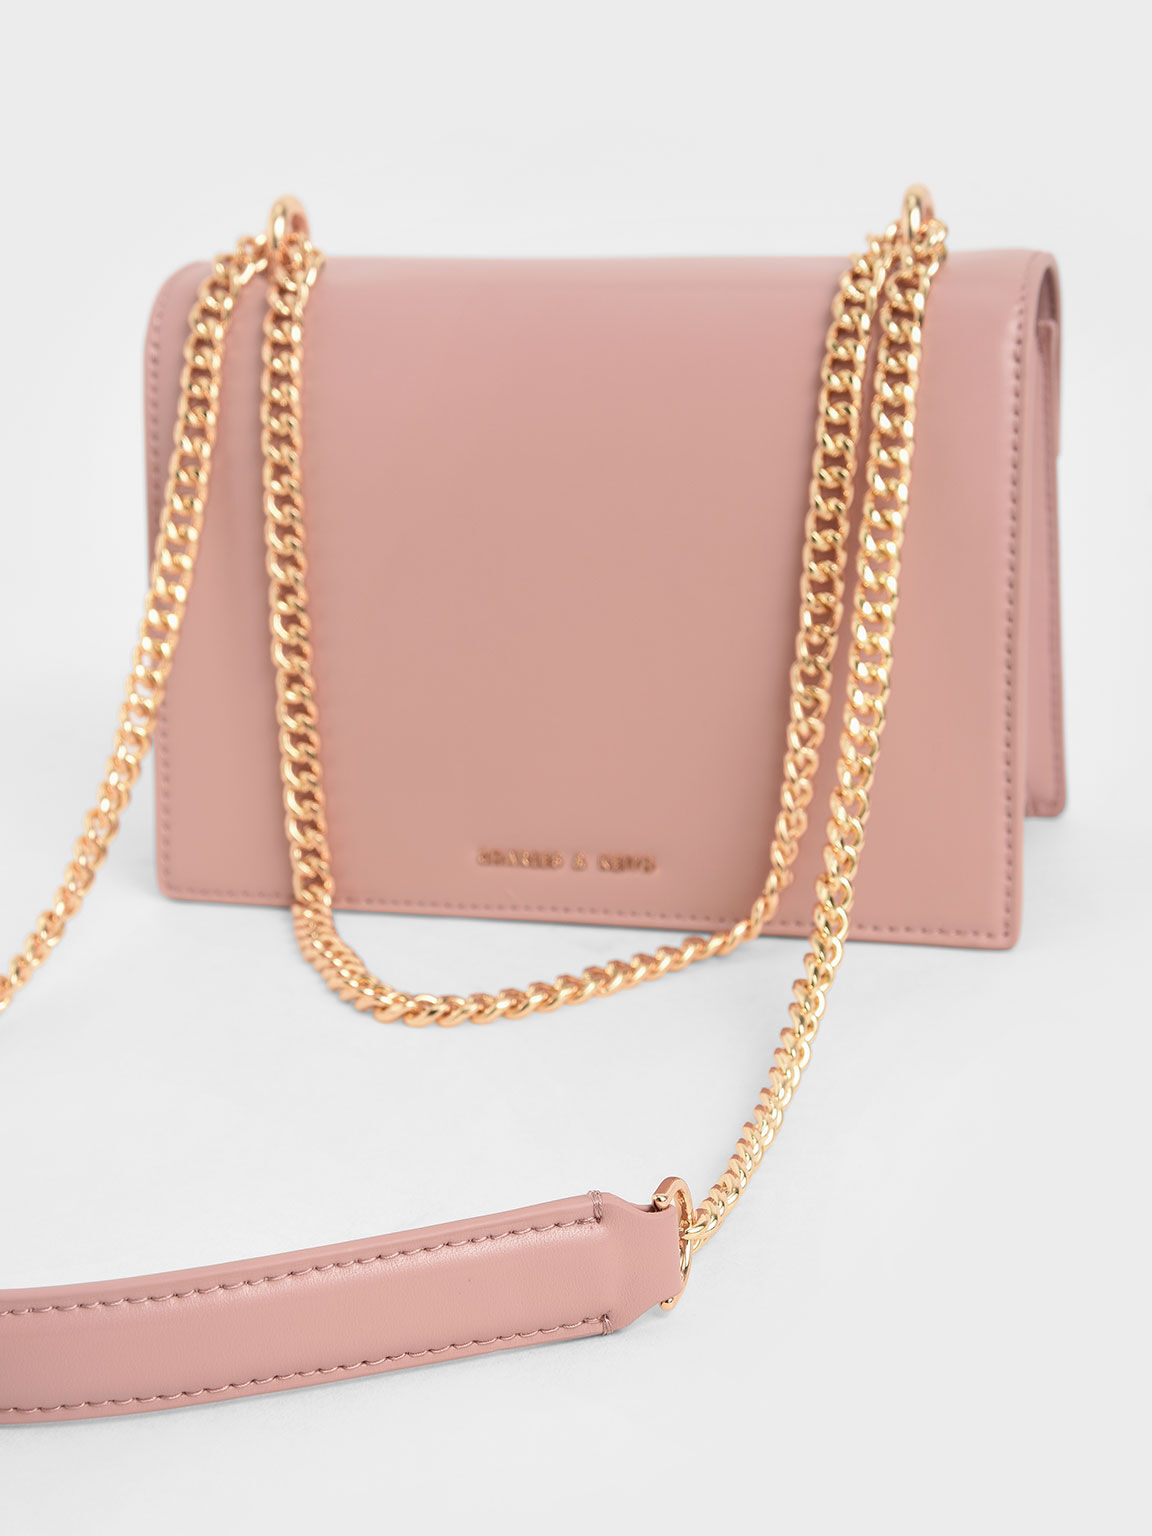 Stone-Embellished Shoulder Bag, Pink, hi-res